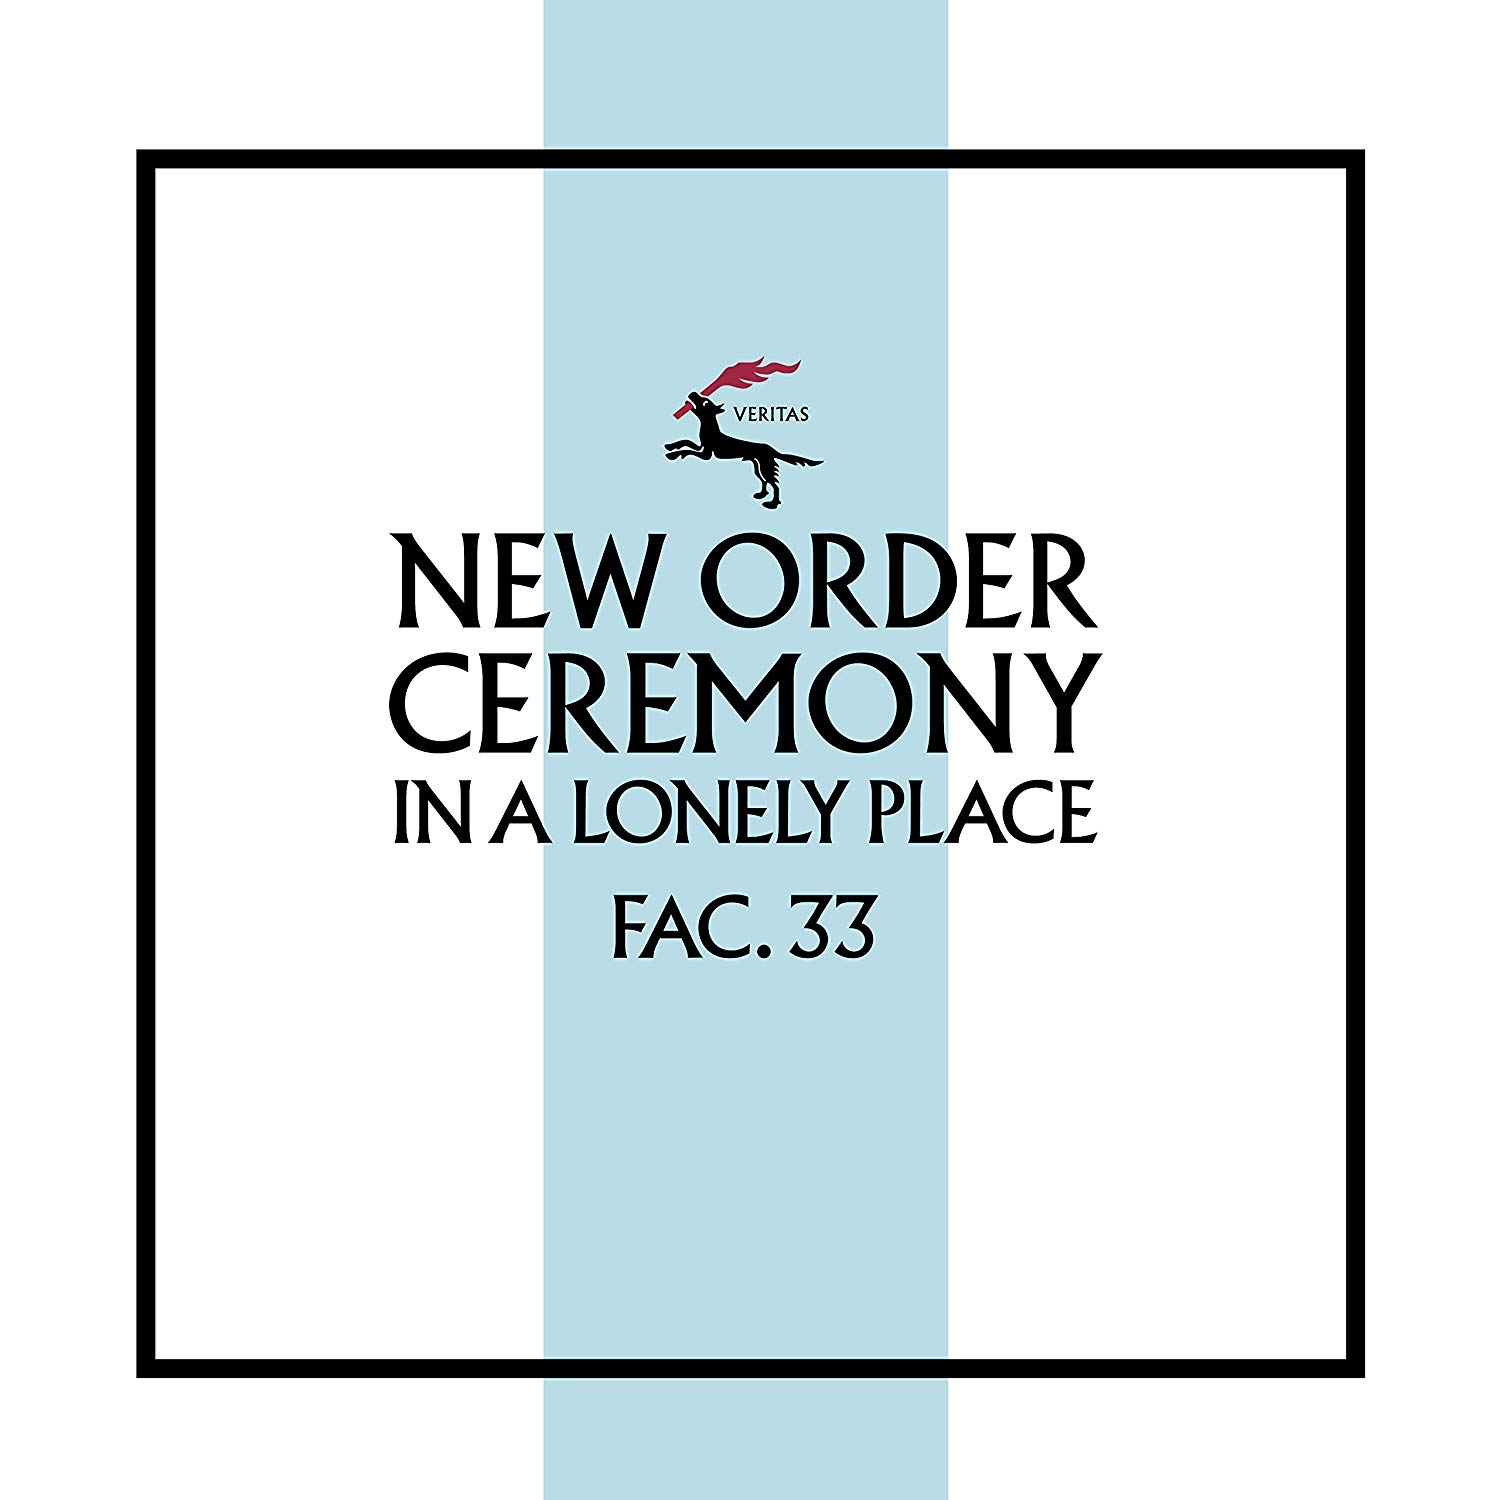 Ceremony (Original Remaster) - New Order